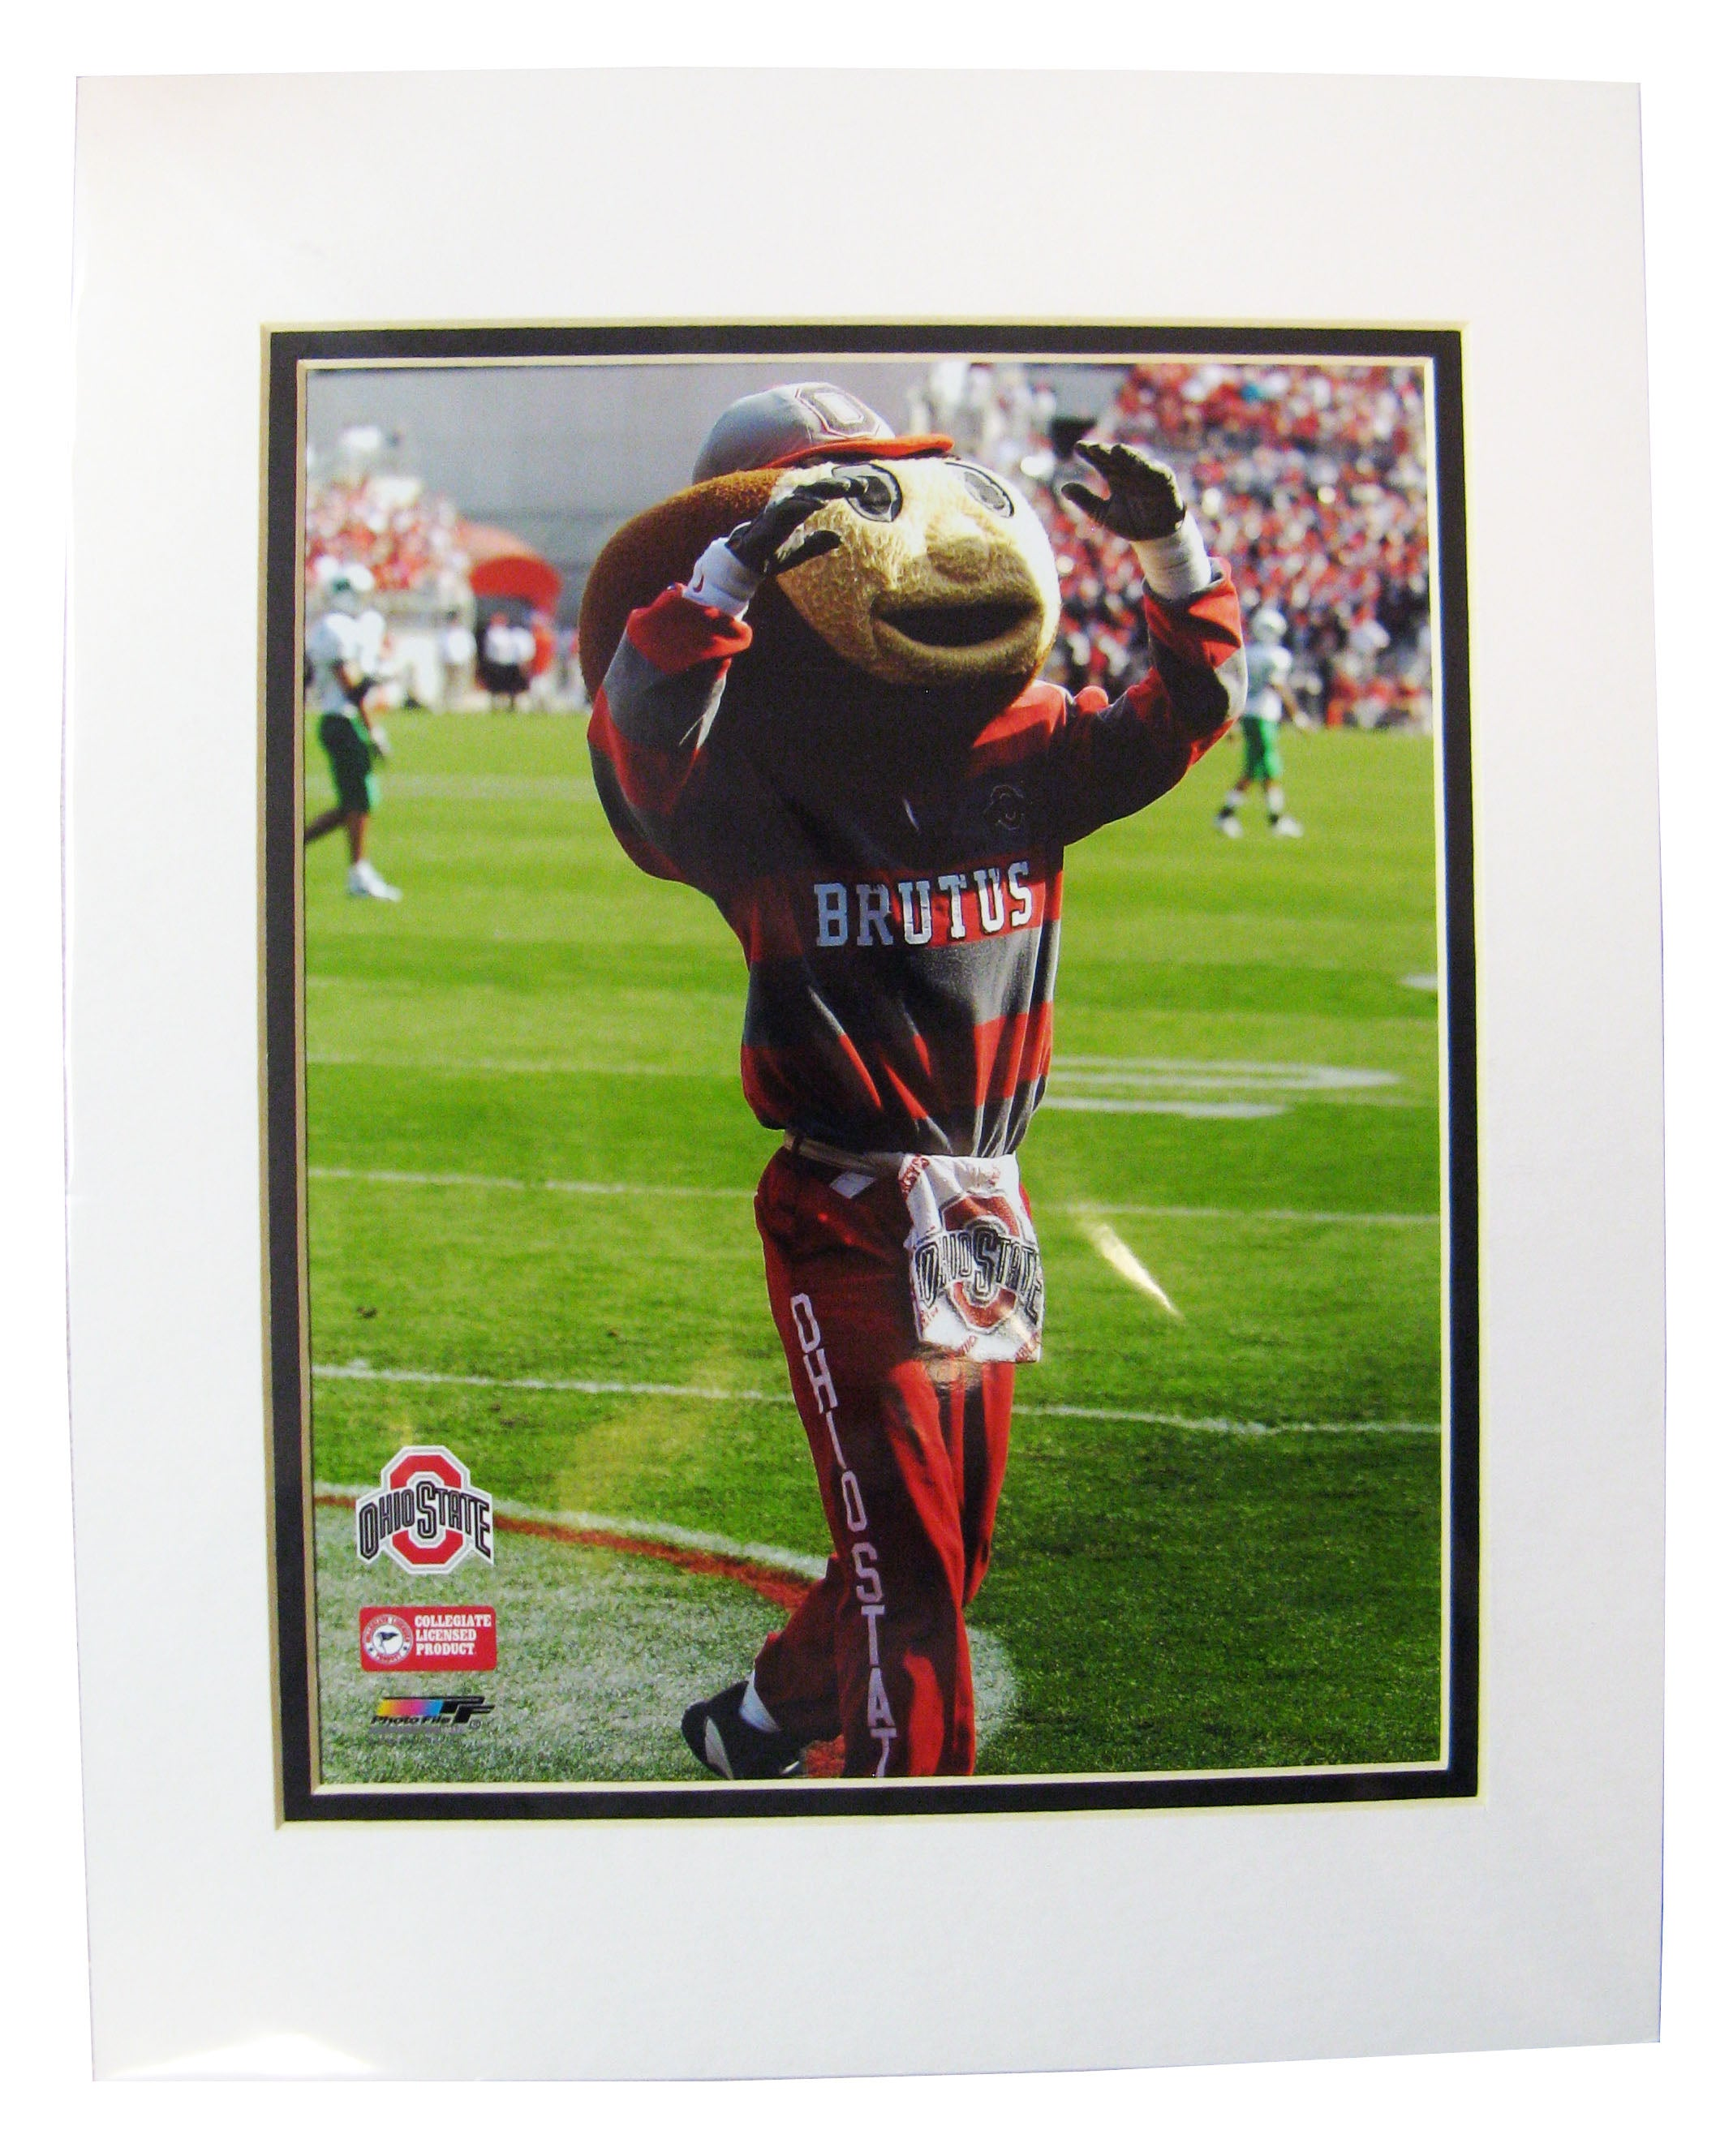 Unsigned Ohio State Brutus Buckeye 8x10 Matted Photo - Sports Butler